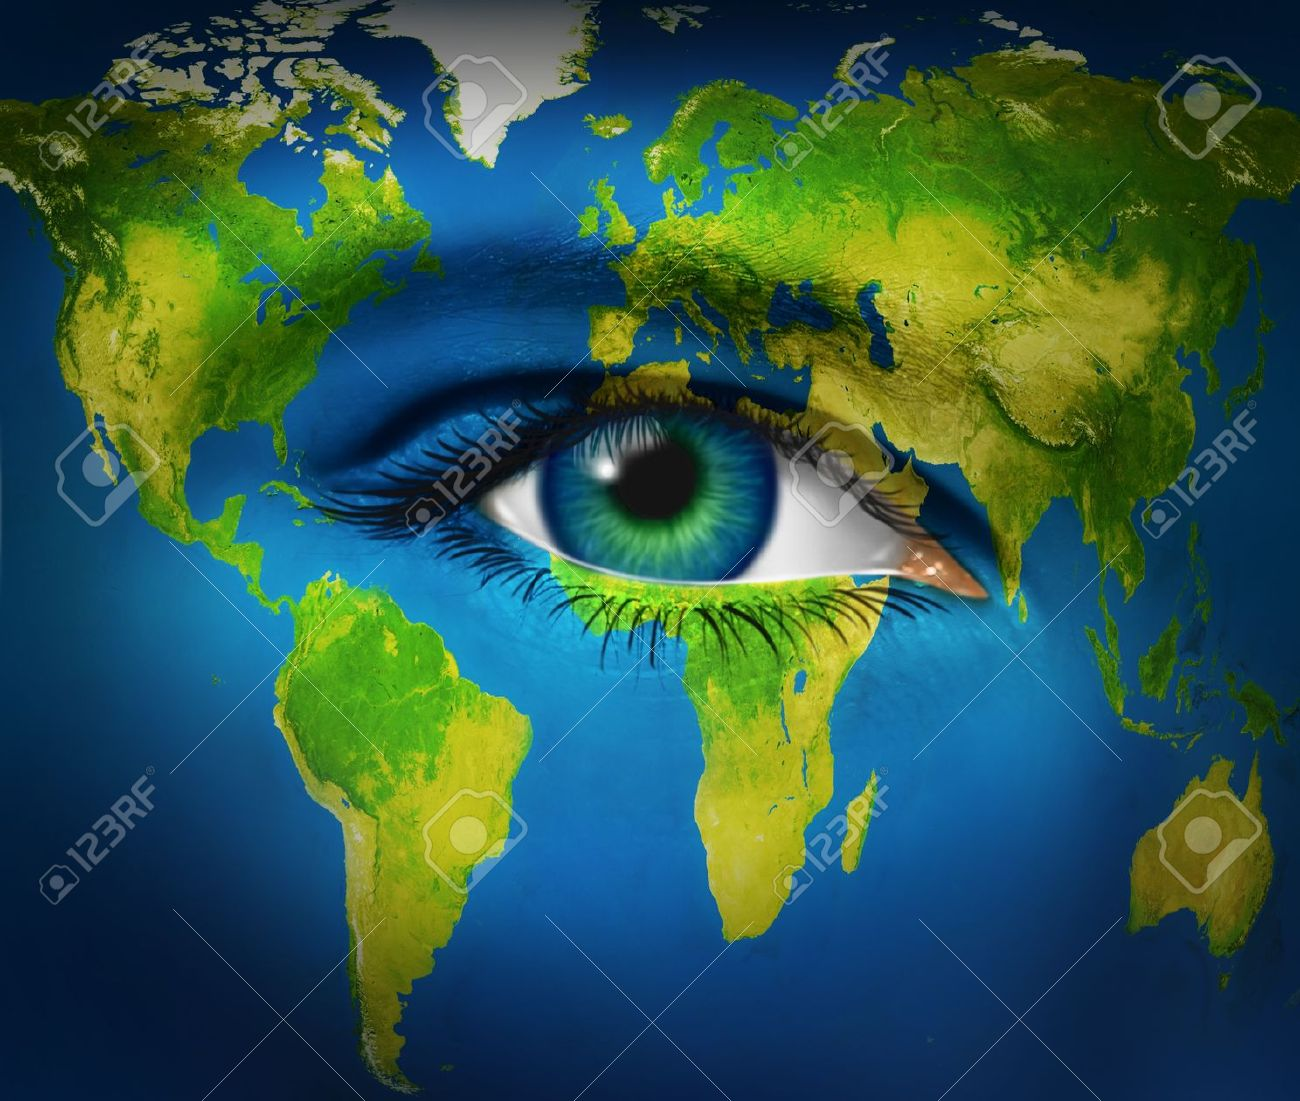 Human eye earth planet  as world vision for the future  and global insight into international business and politics through communications and internet network connections as united nations of  people from all countries as one humanity. Stock Photo - 12353884